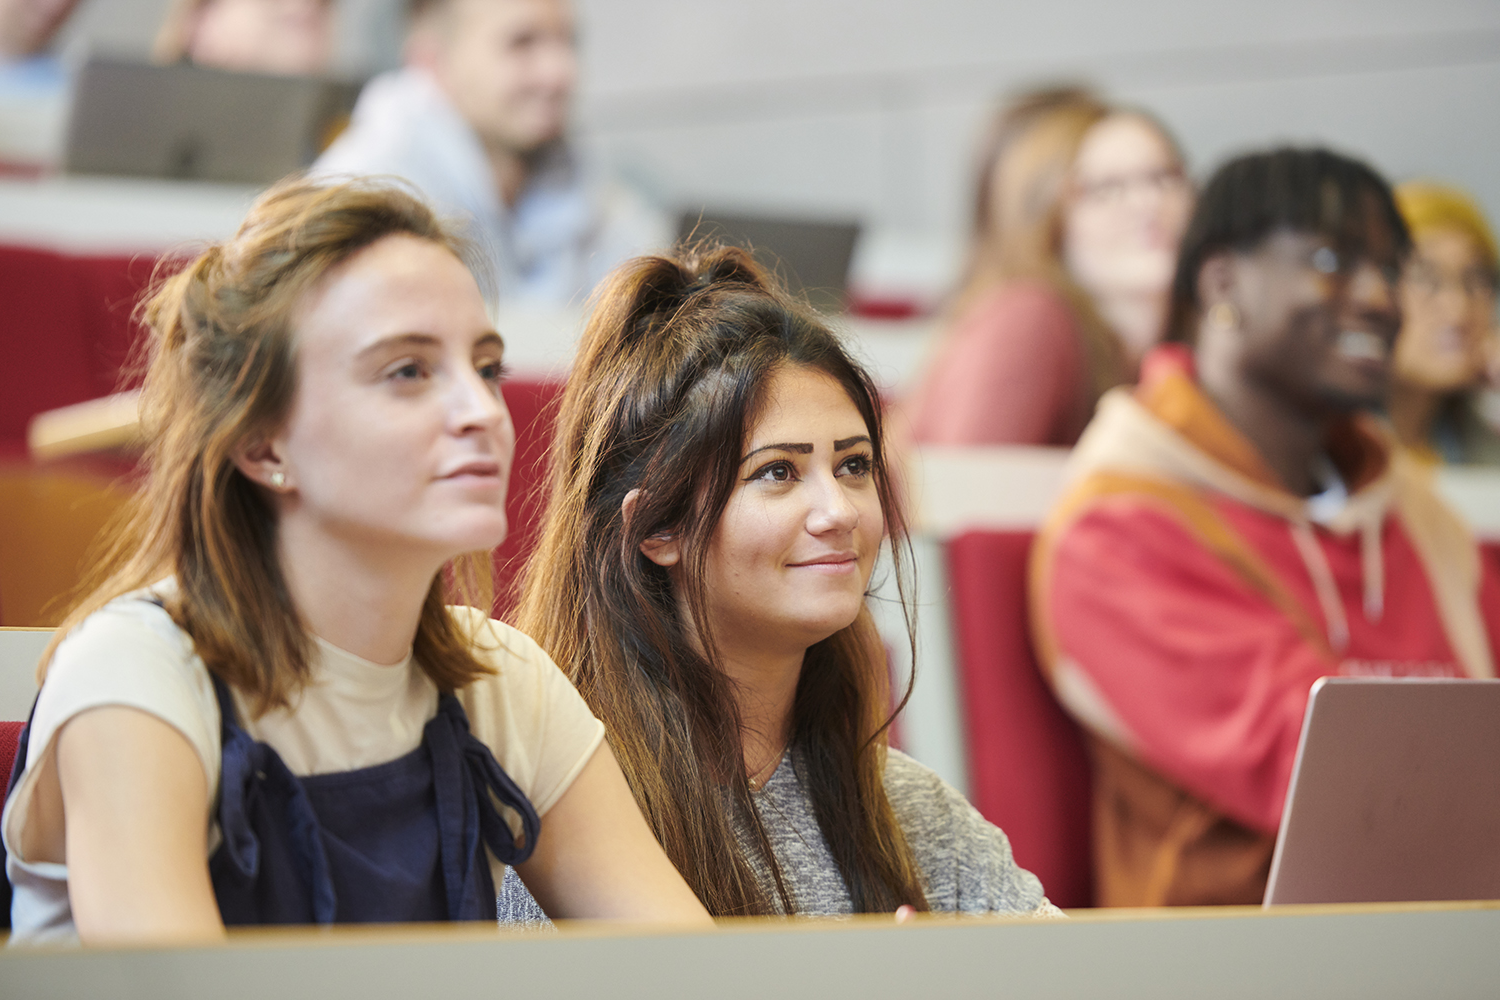 Two students sitting in a lecture theatre.